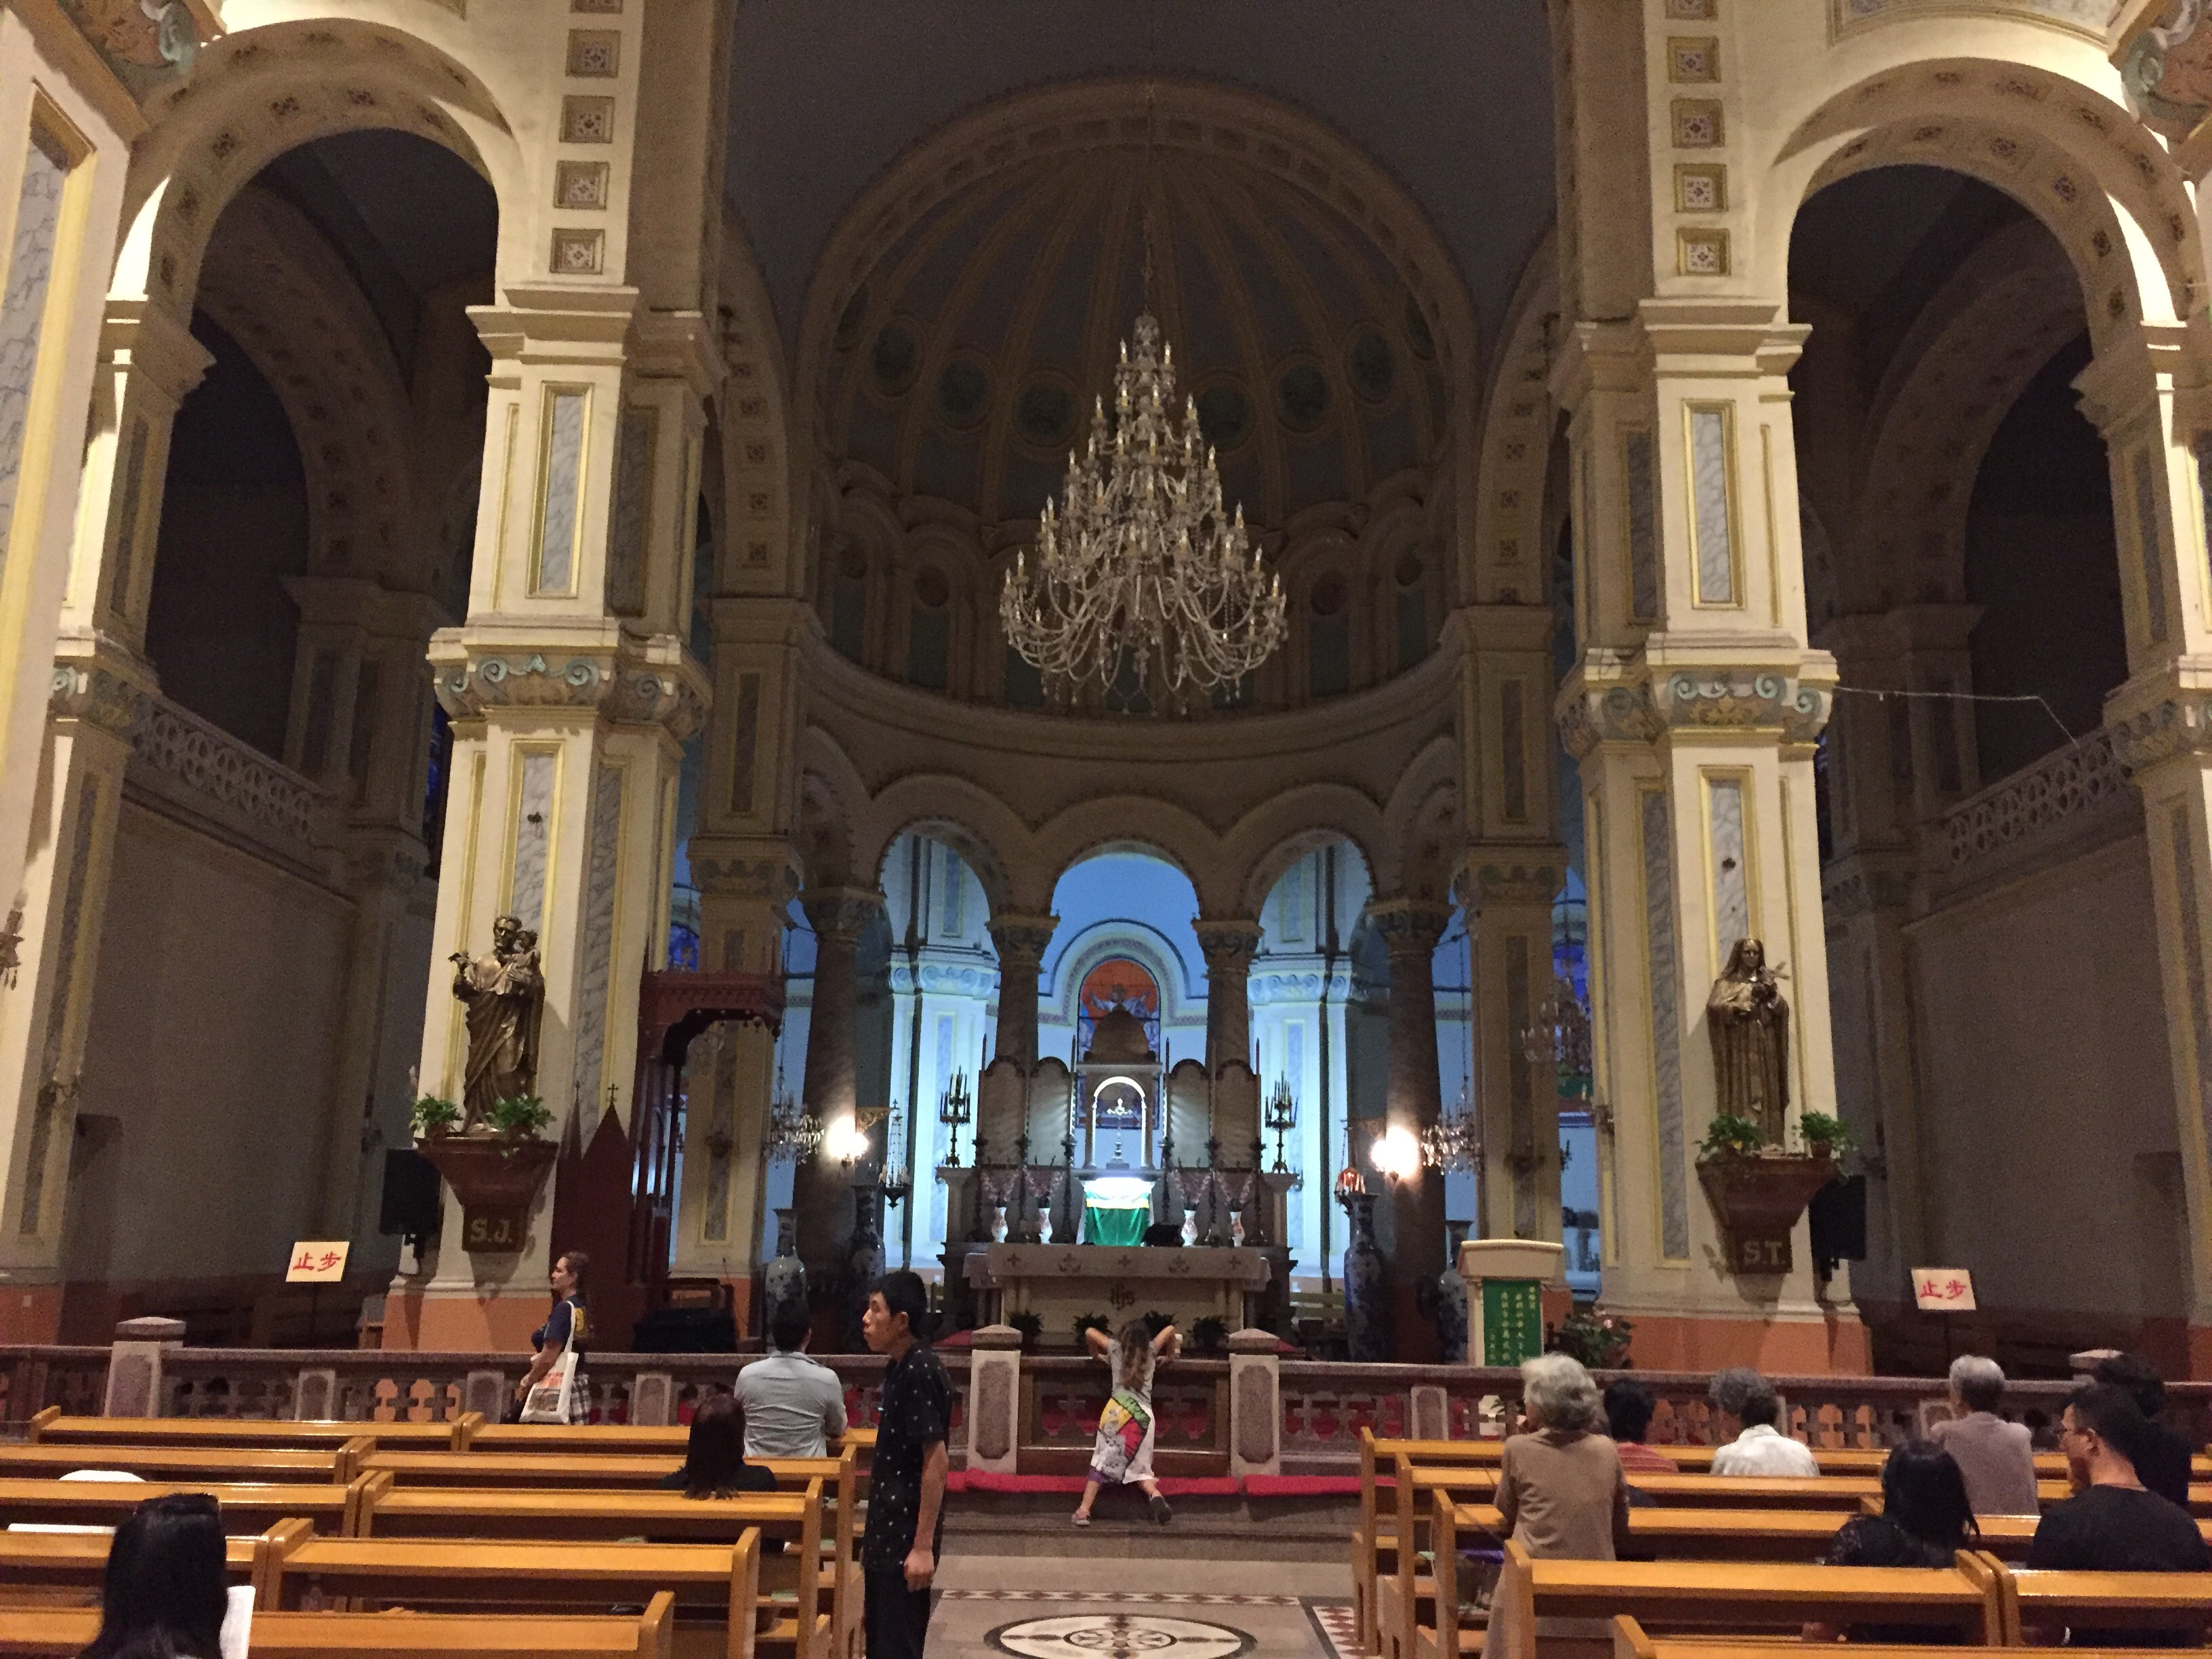 View of the Altar Inside the Tianjin Cathedral